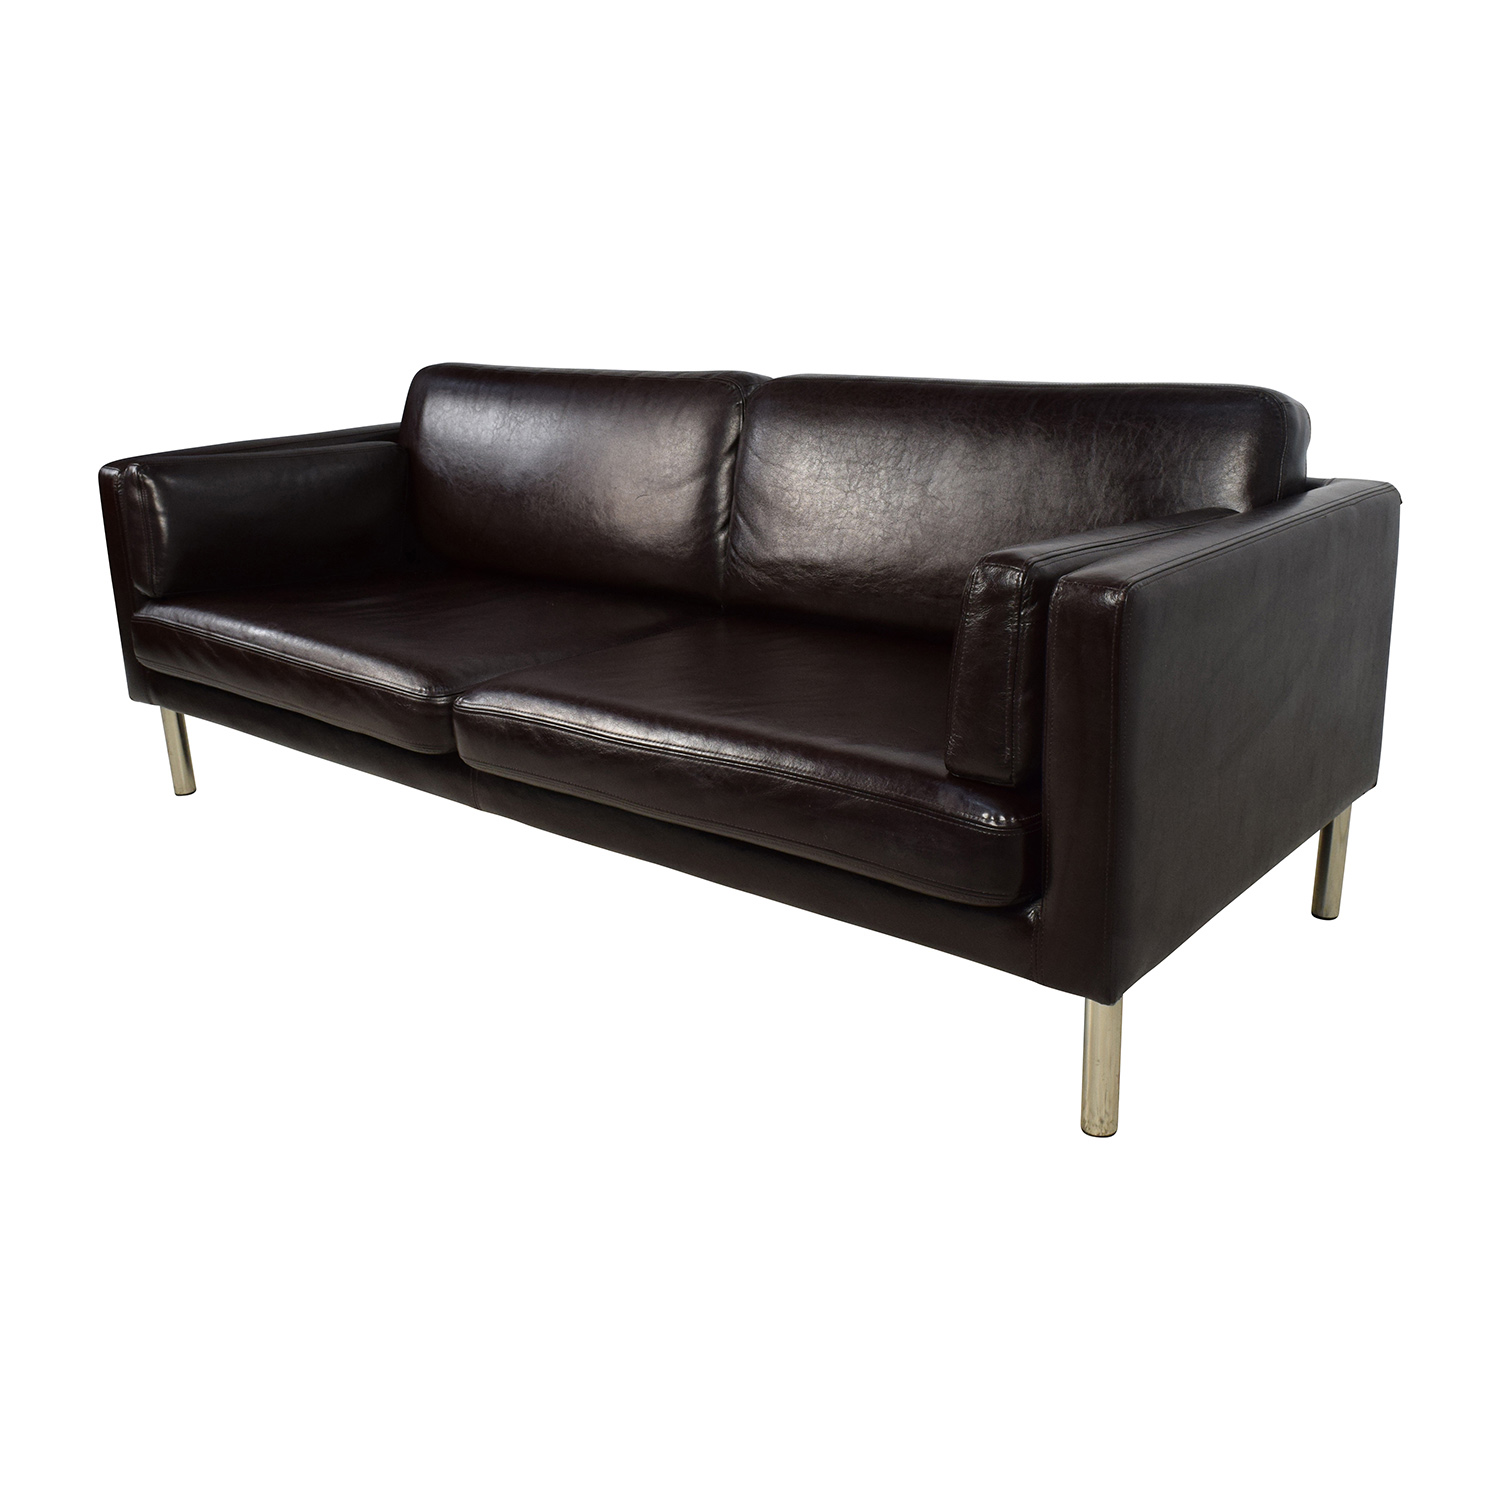 76% OFF Brown Leather Sofa with Chrome Legs Sofas